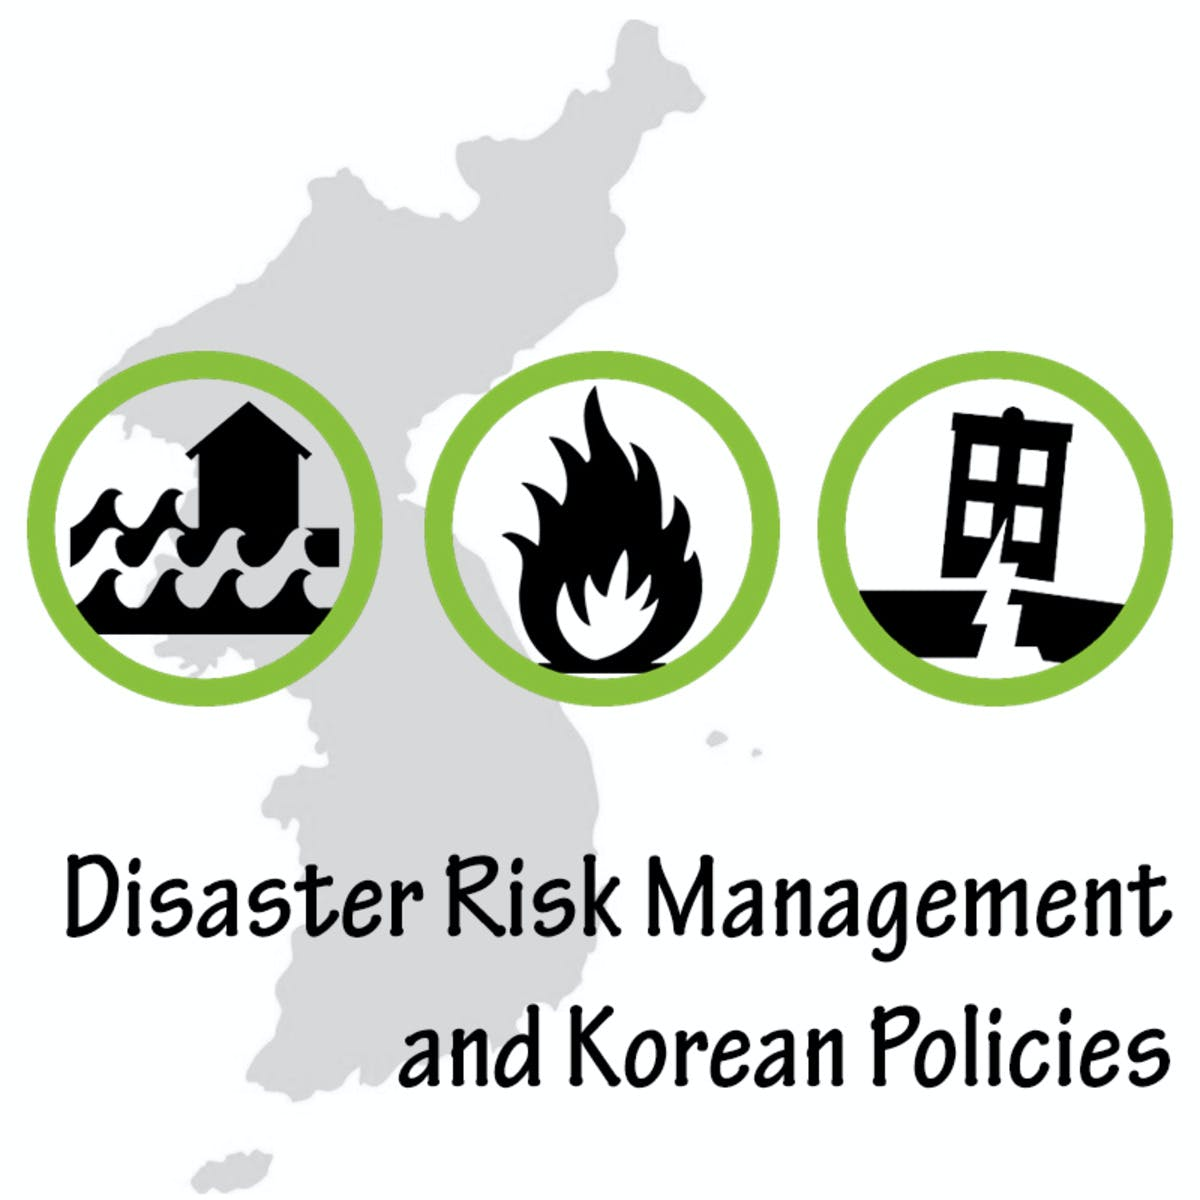 Disaster Risk Management and Korean Policies